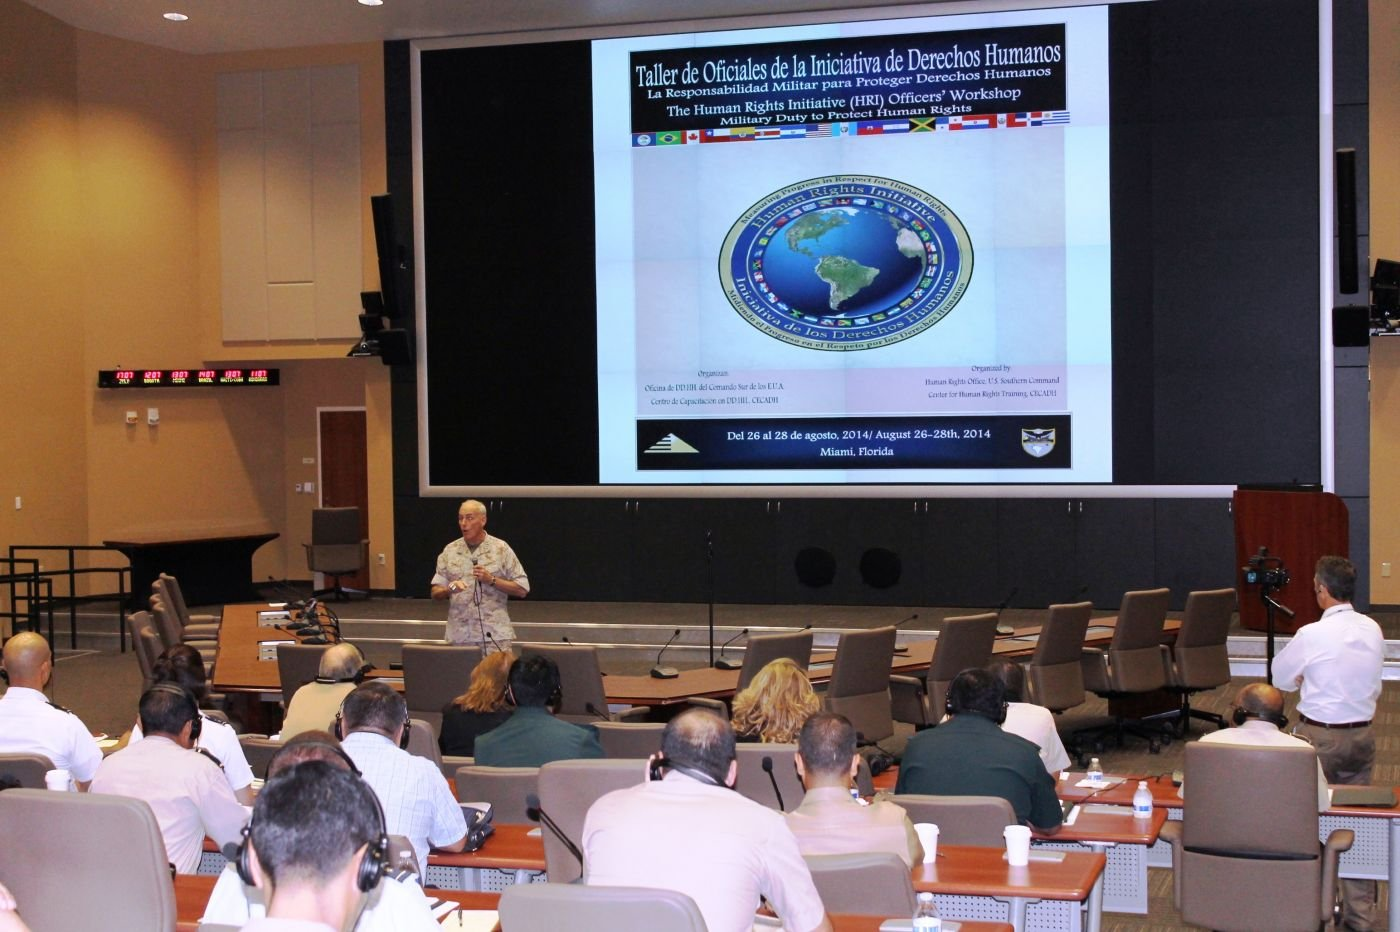 Military's Duty to Protect Human Rights Discussed at SOUTHCOM